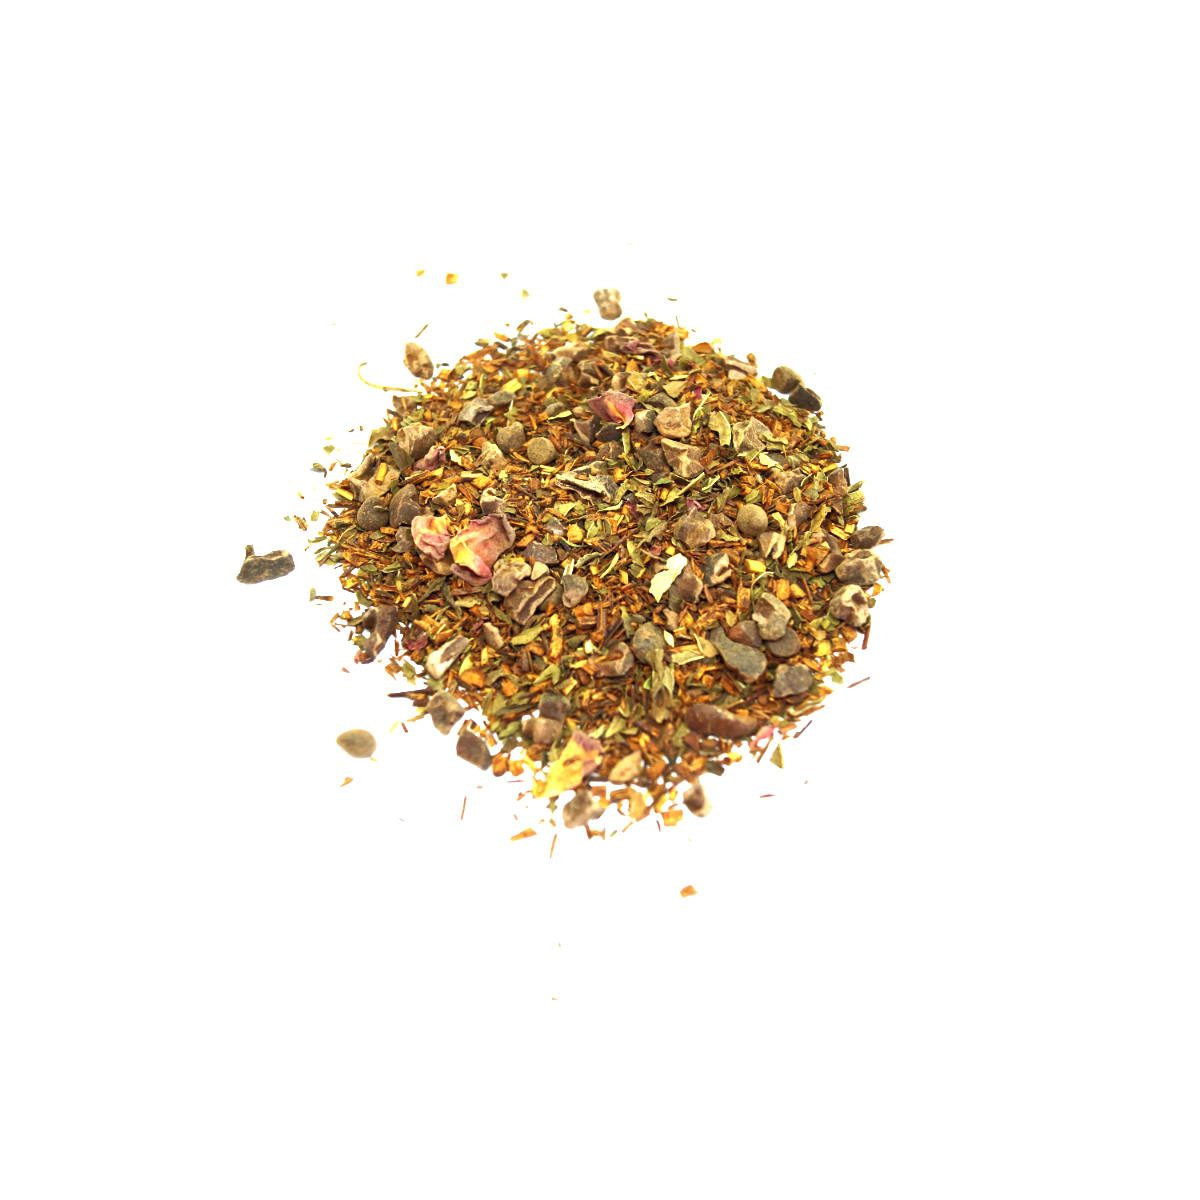 Mint Julep Rooibos Tea with Peppermint Leaf, Cacao Nibs, and Rose Petals. Caffeine Free and mimics a great Mint Julep Drink!